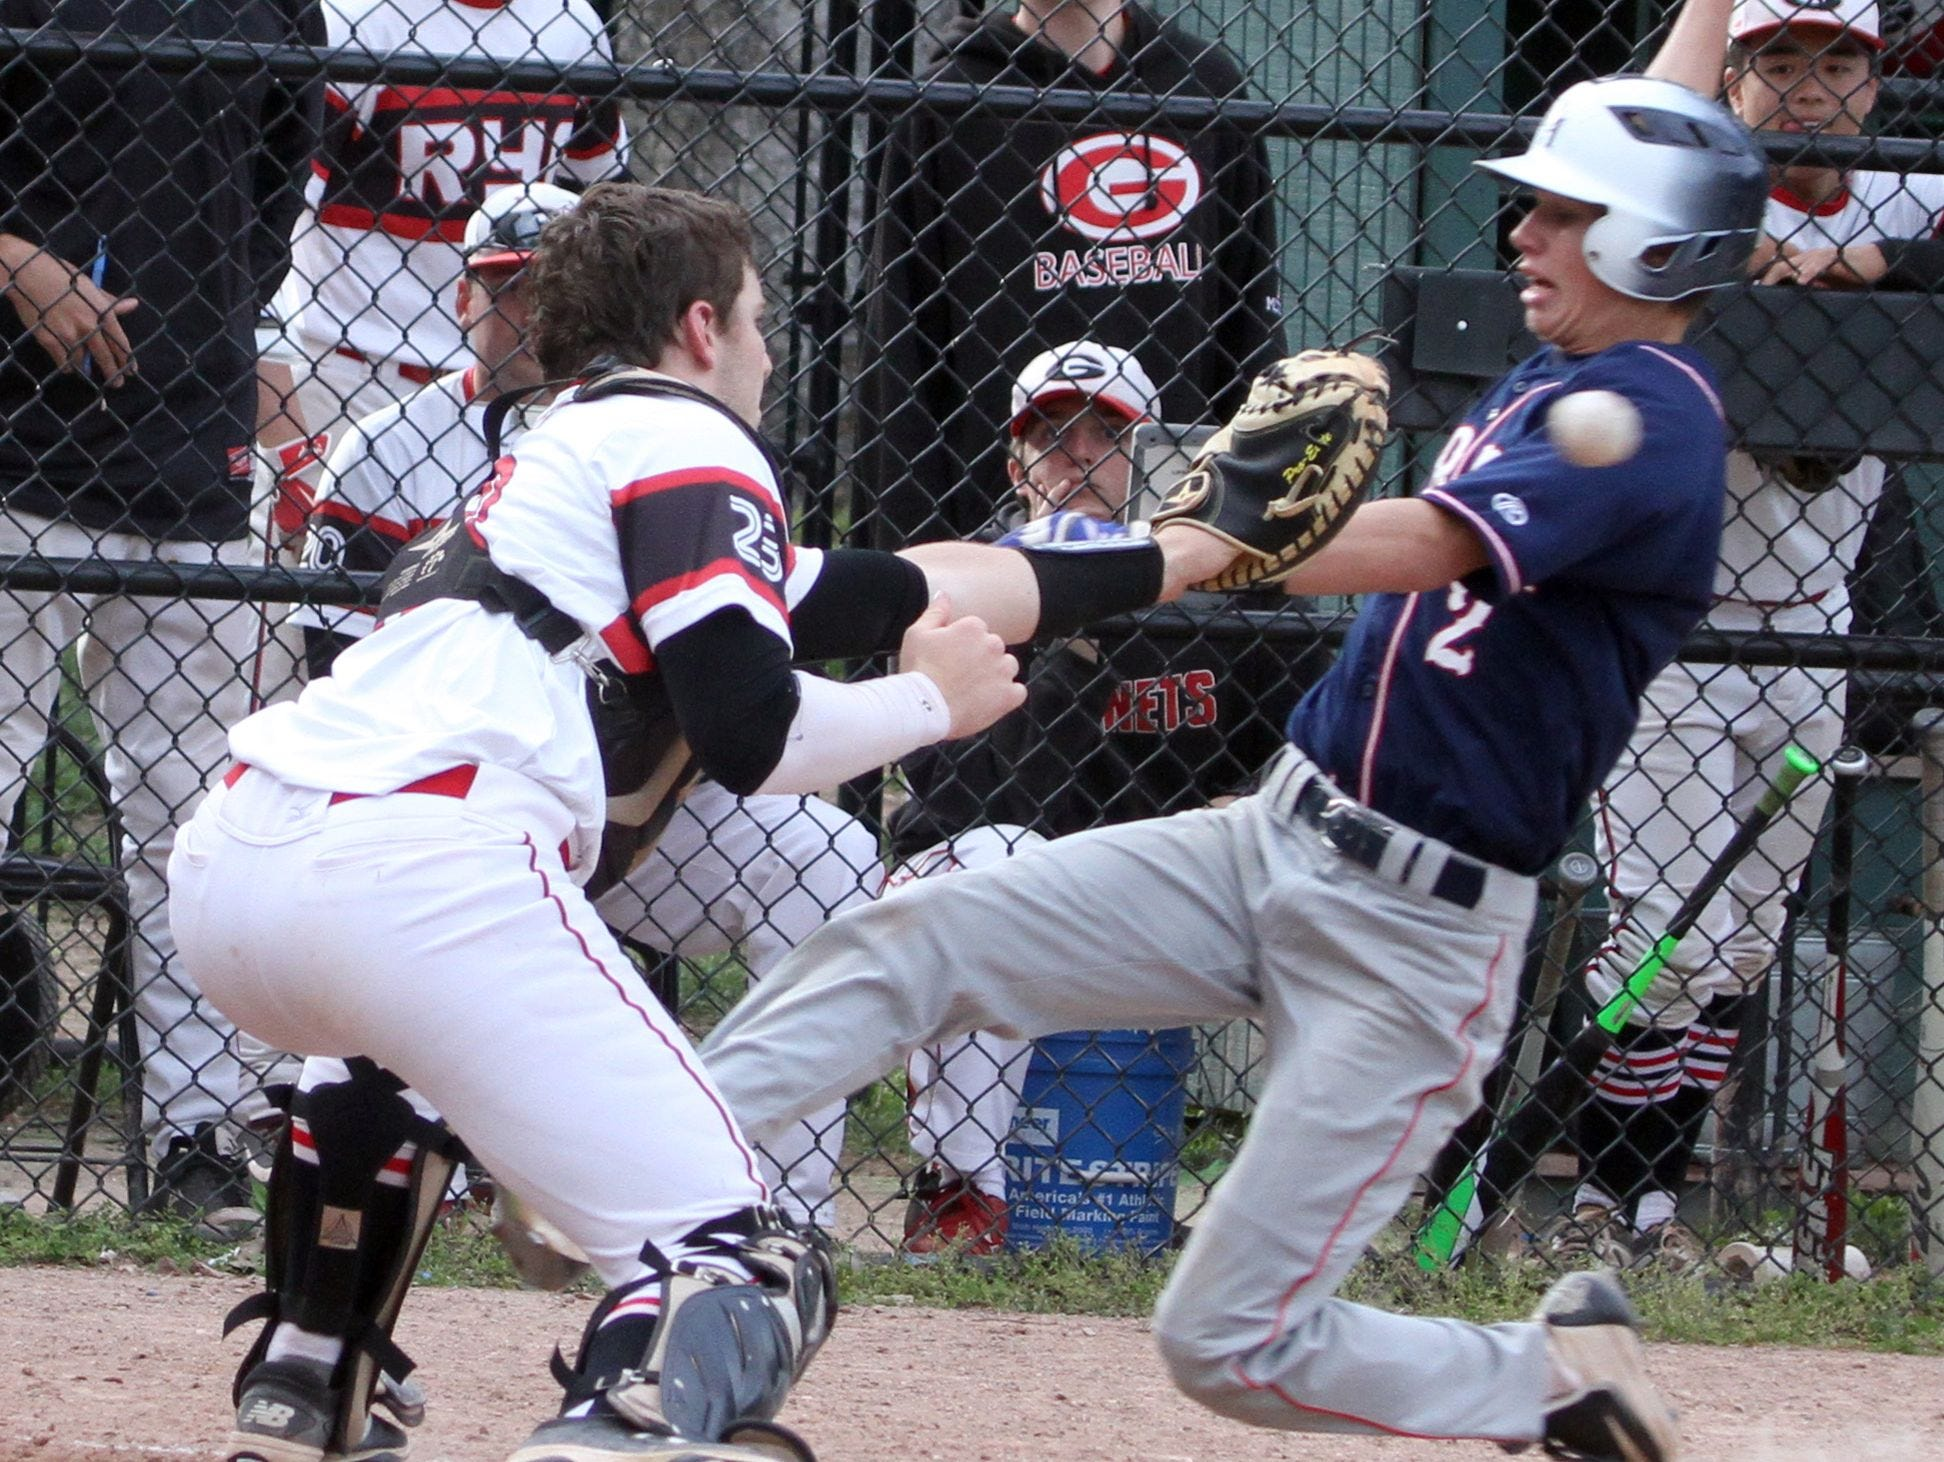 Nick Schaefer of Bryam Hills is tagged out by Rye catcher Chase Pratt during a varsity baseball game at Disbrow Park in Rye May 10, 2016. Byram Hills defeated Rye 4-0.